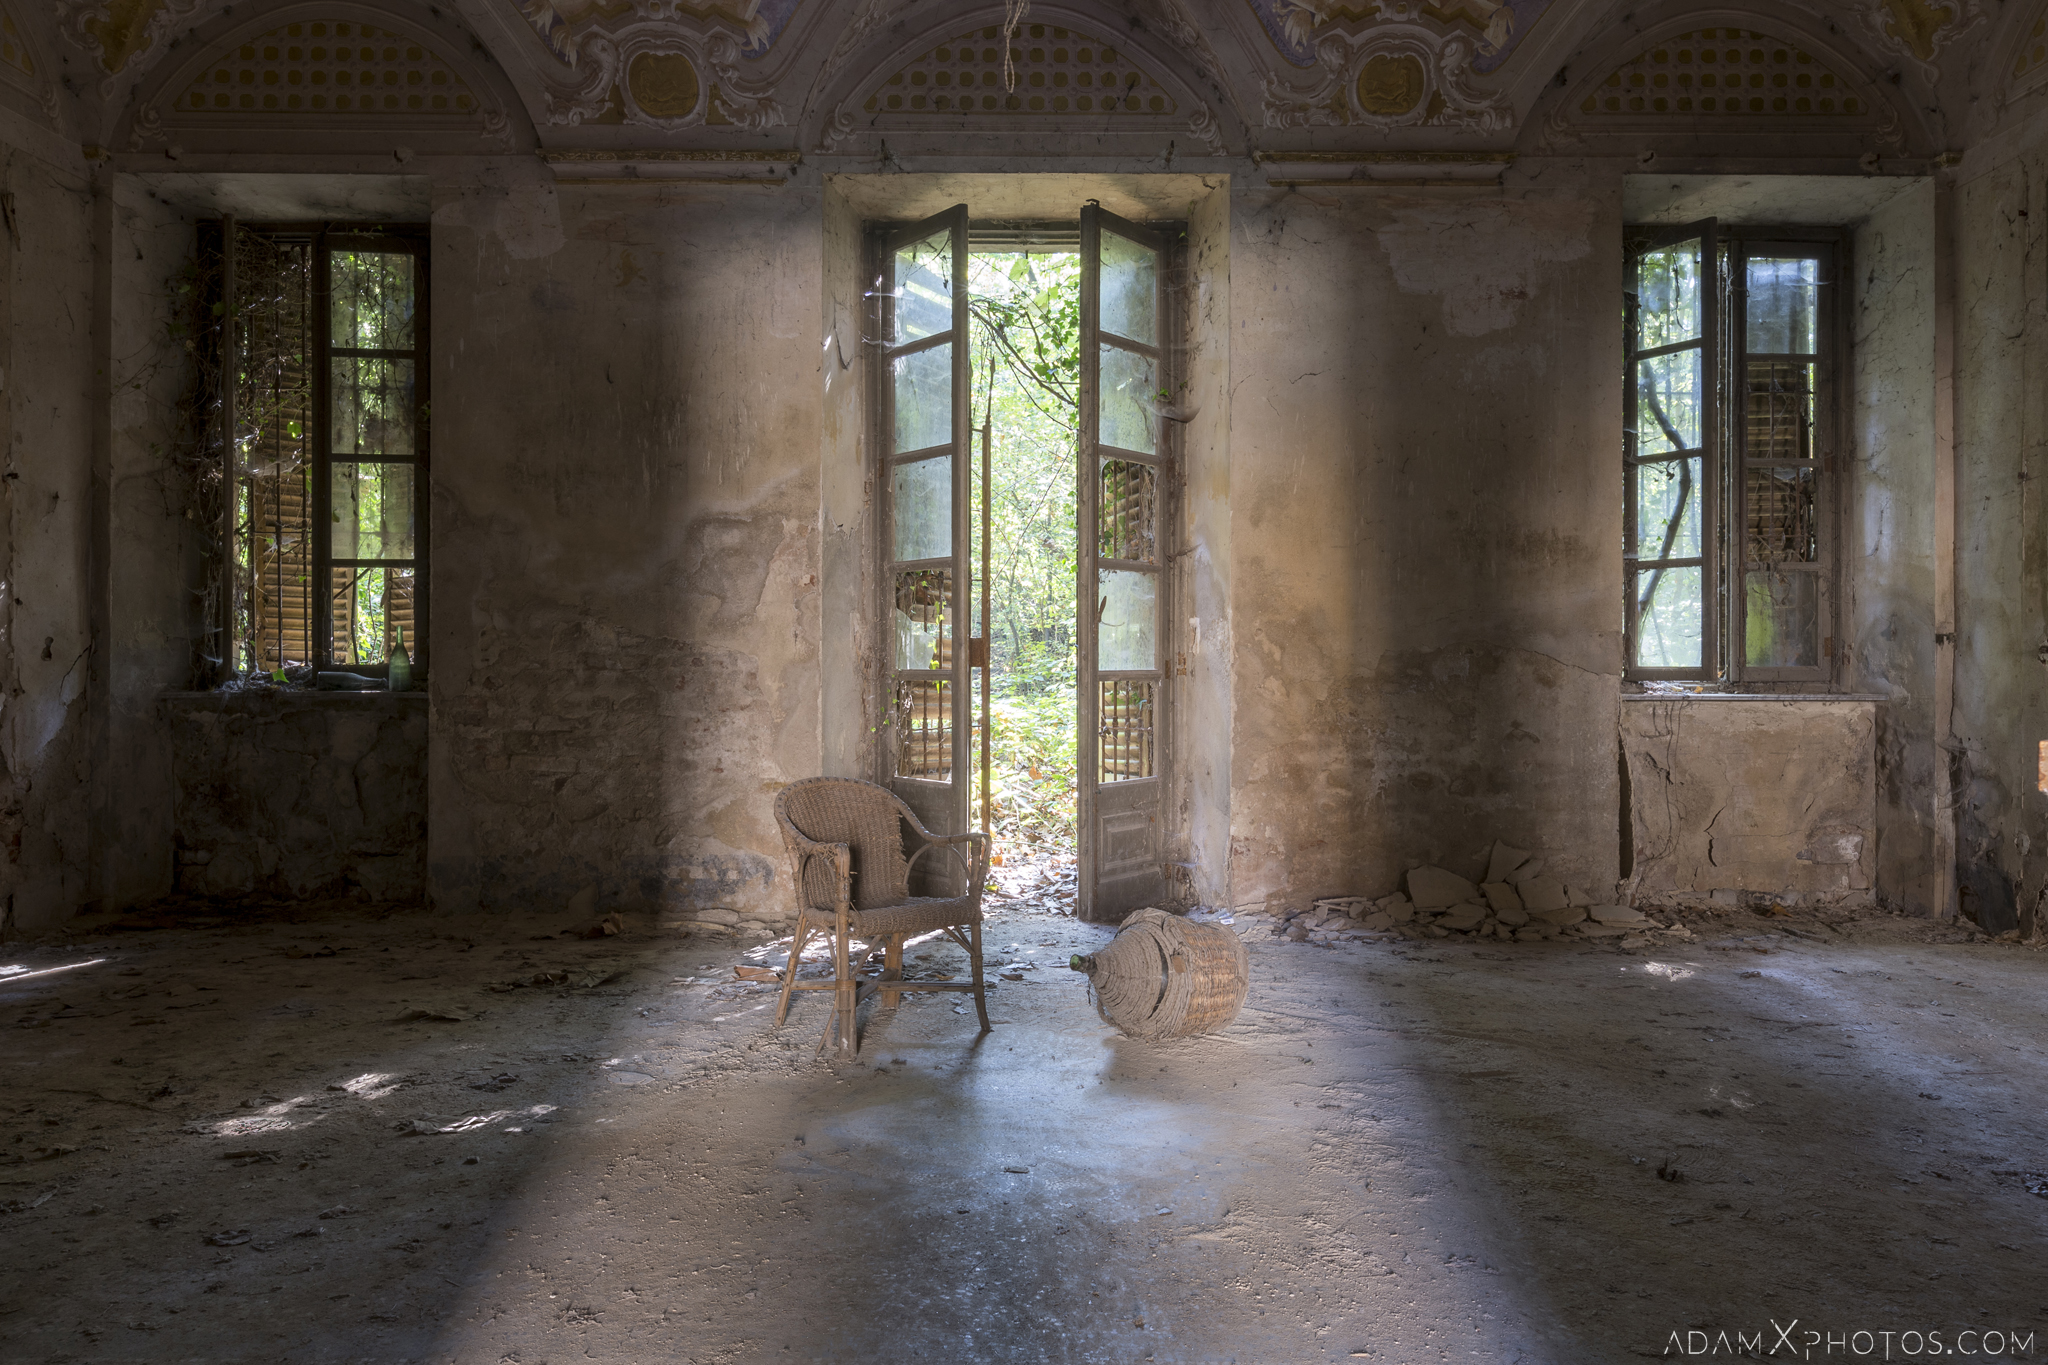 Palazzo di L dei Conte M Castello di Lauriano Urbex Adam X Urban Exploration Italy Italia Access 2016 Abandoned Grand Ornate Neoclassical decay lost forgotten infiltration derelict location creepy haunting eerie